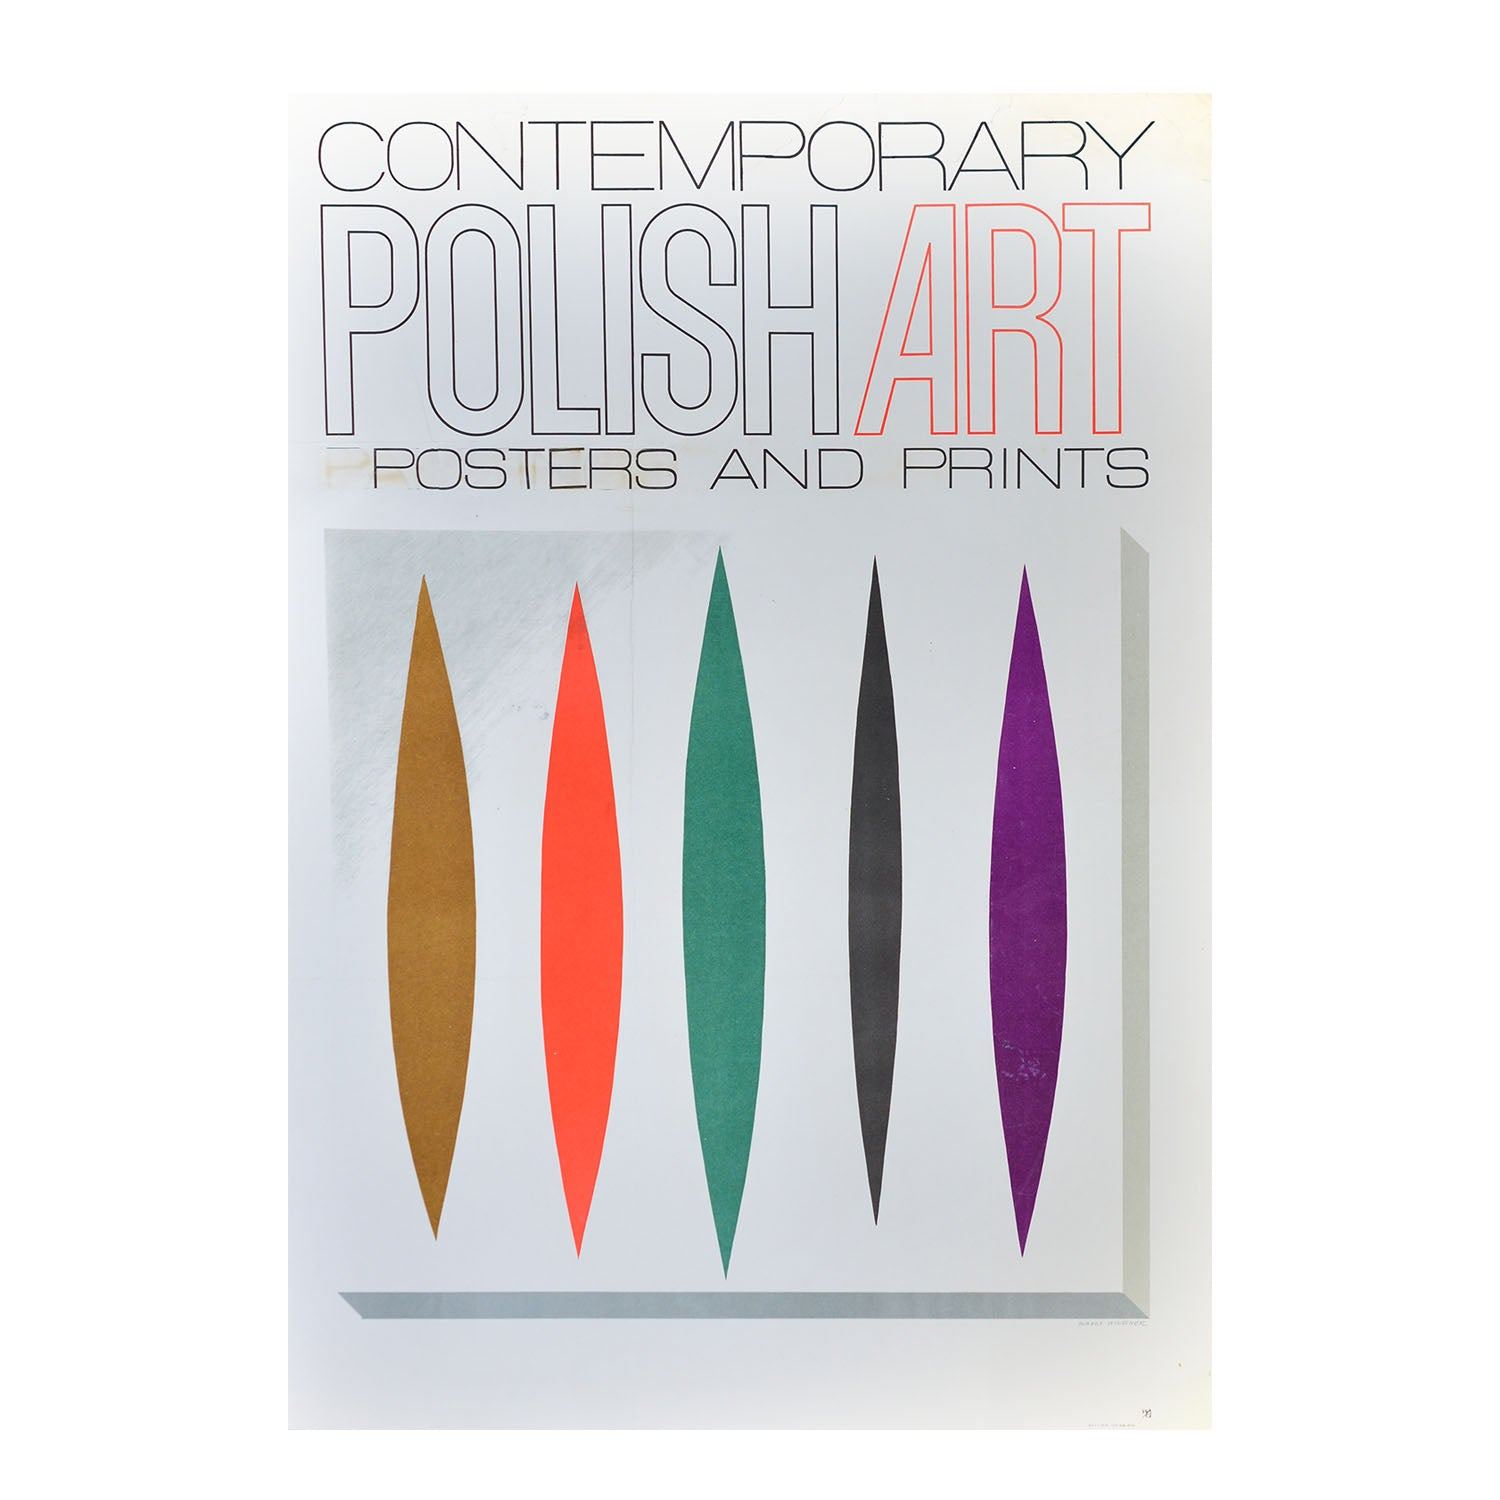 Contemporary Polish Art Posters and Prints